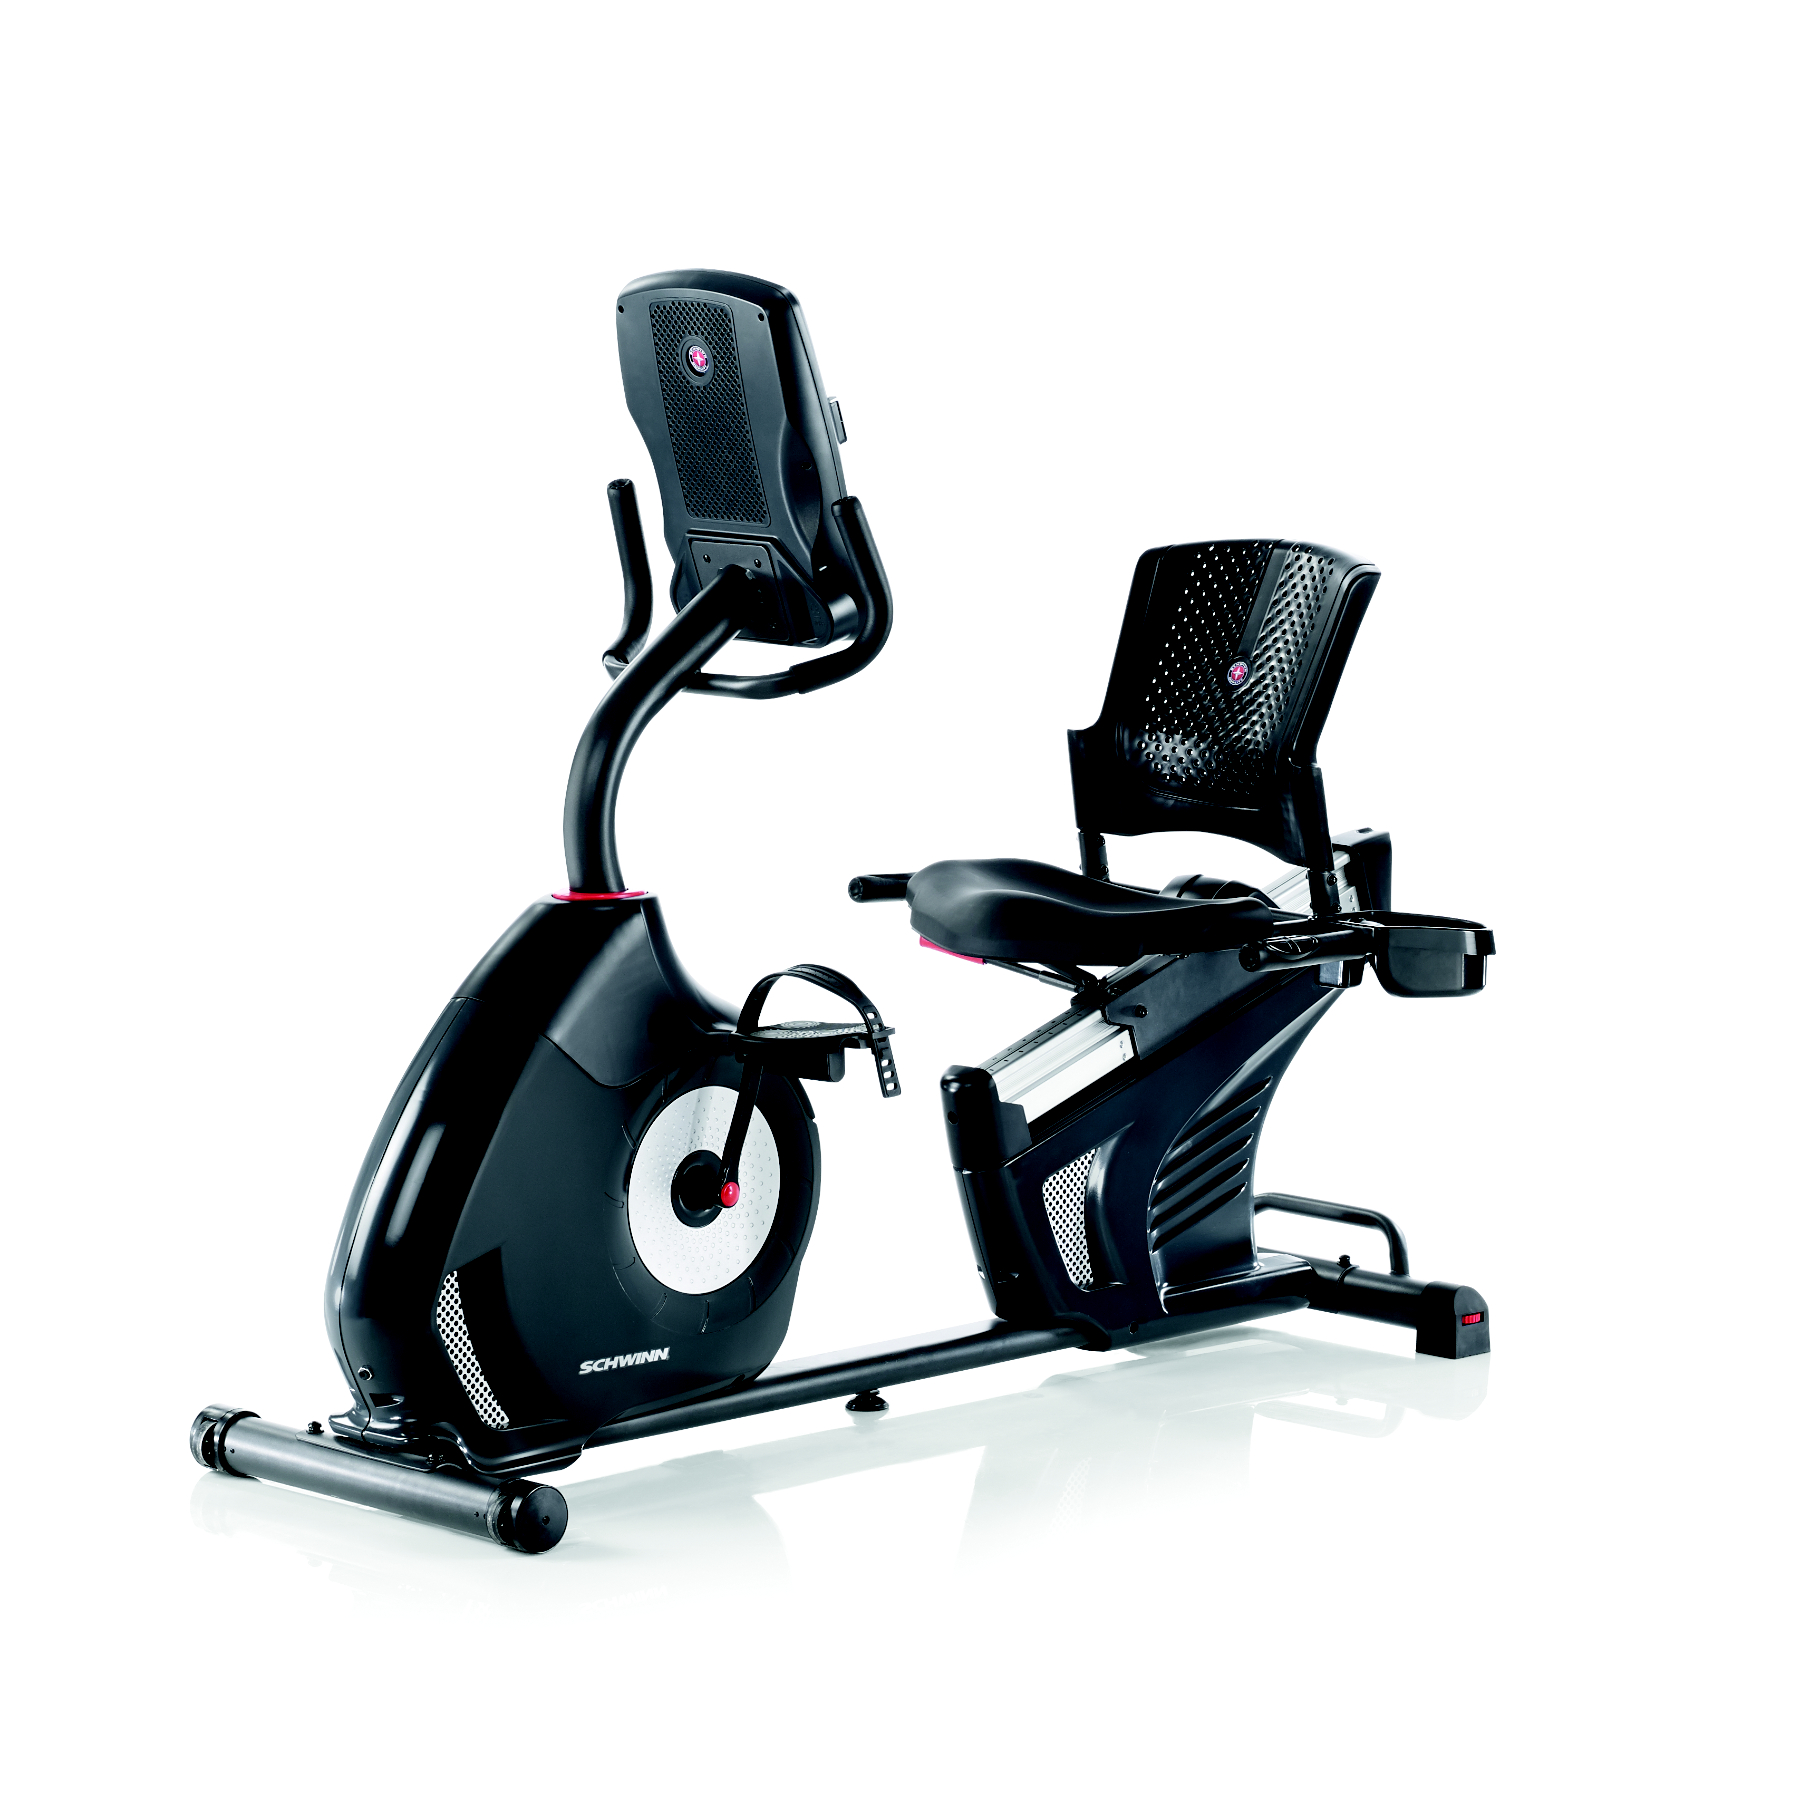 Schwinn 270 Recumbent Cycle